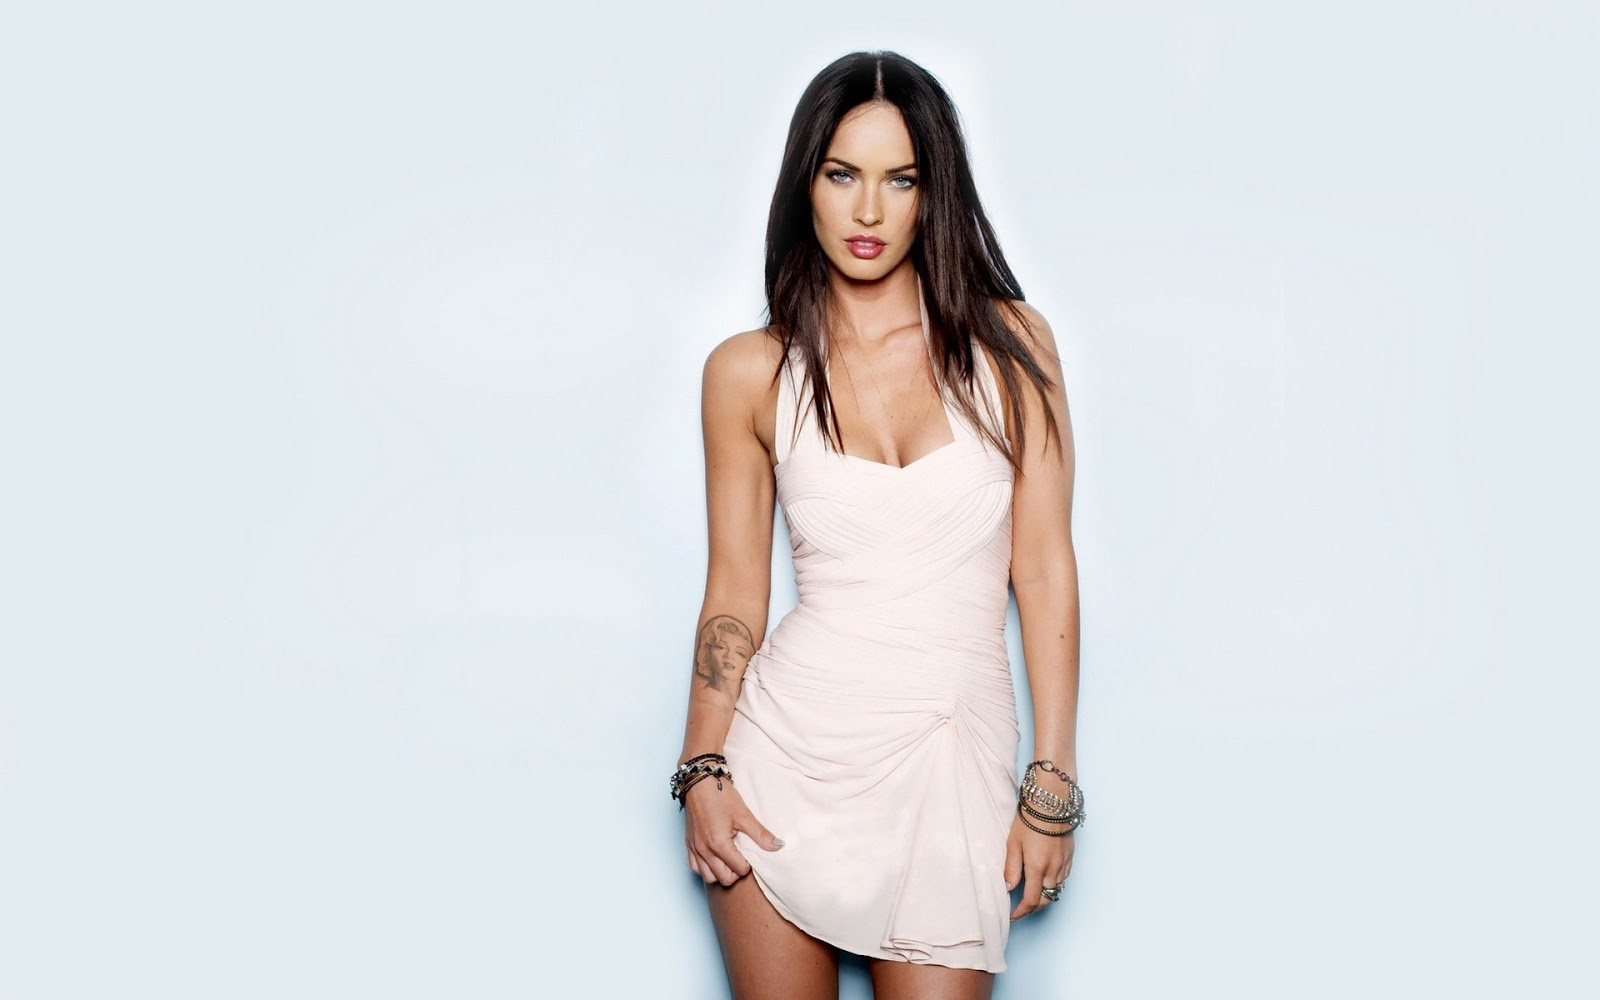 megan fox wallpaper 2013 megan fox wallpaper 2013 megan fox 1600x1000